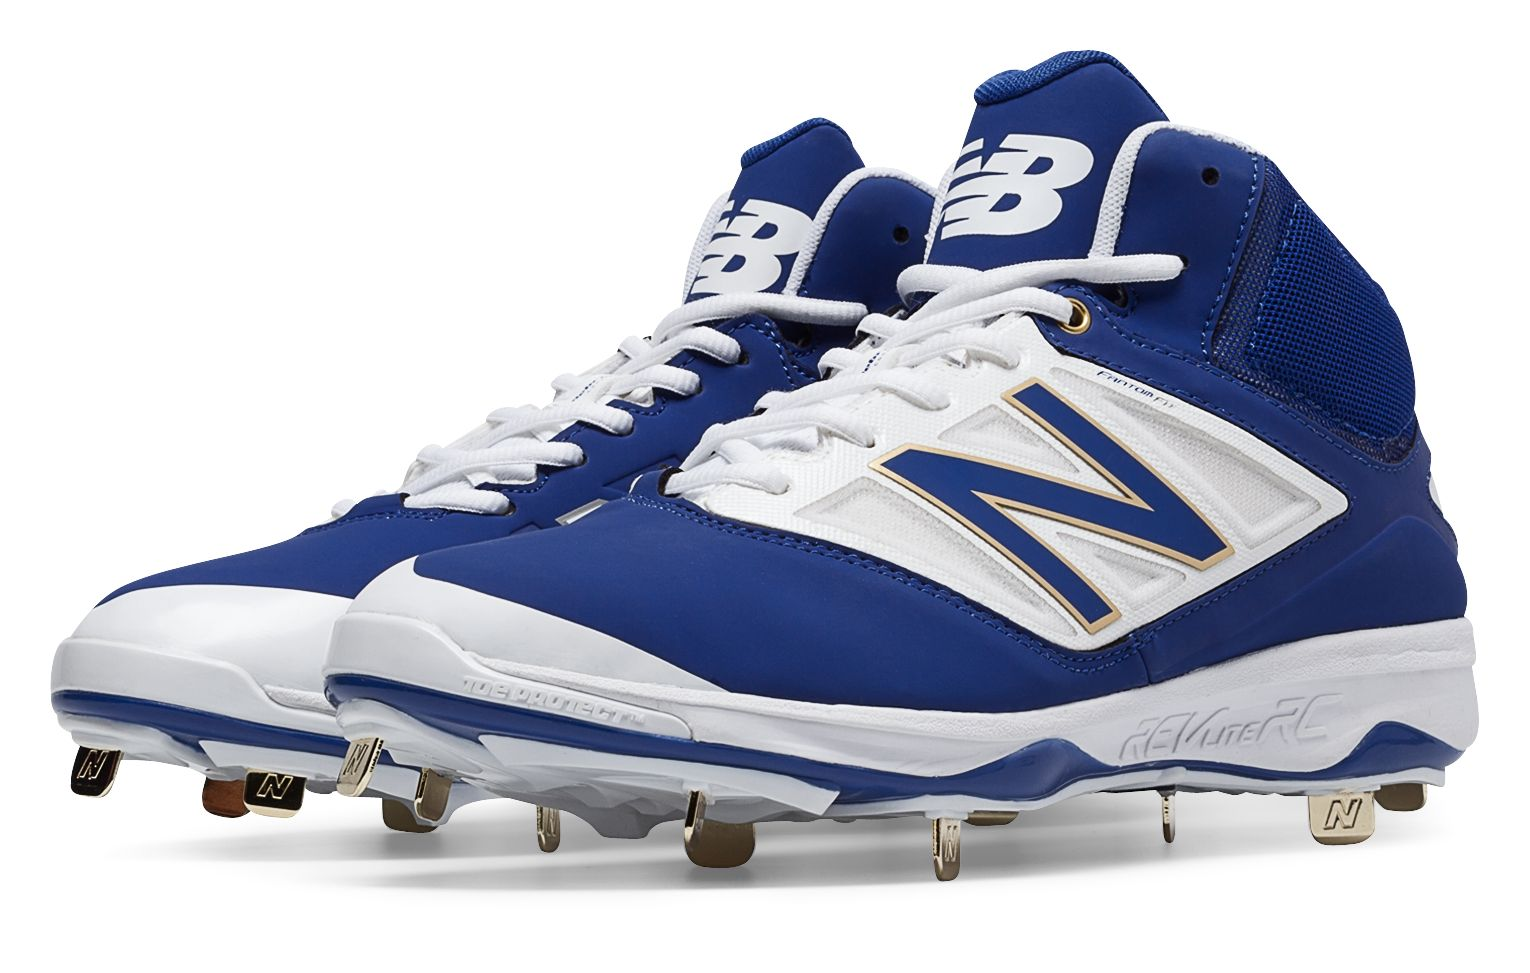 55411a8225faa New Balance Mid-Cut 4040V3 Metal Baseball Cleat Mens Shoes Blue And ...